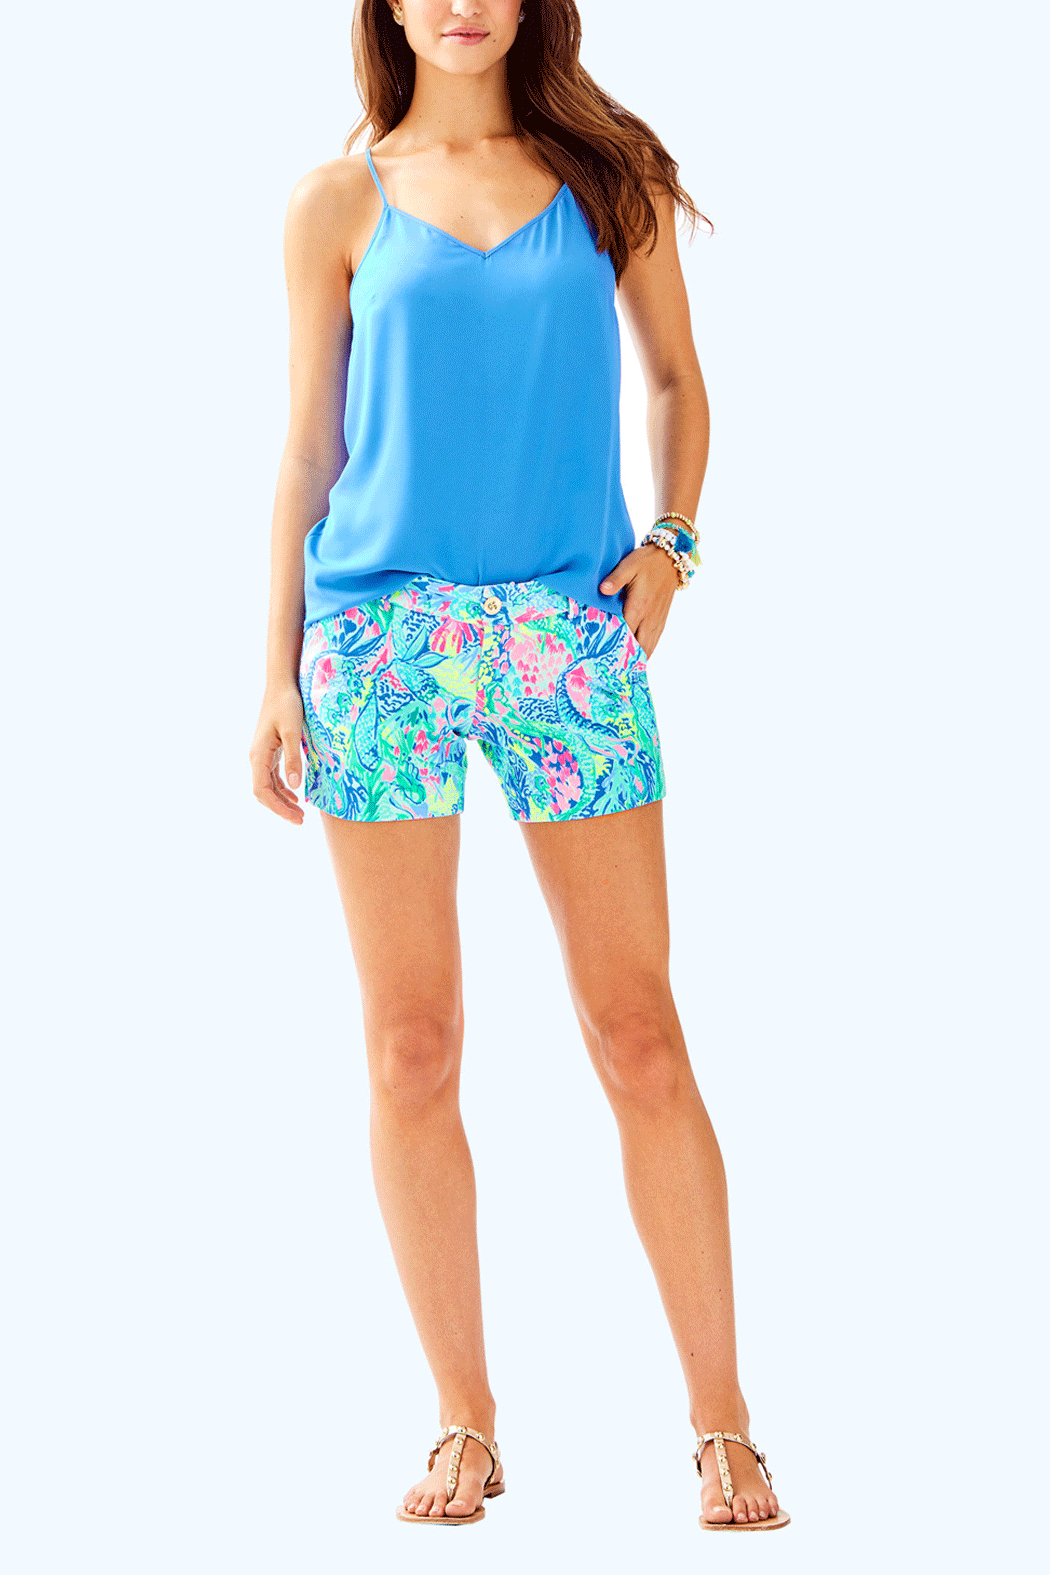 Lilly Pulitzer Dusk Top - Back Cropped Image